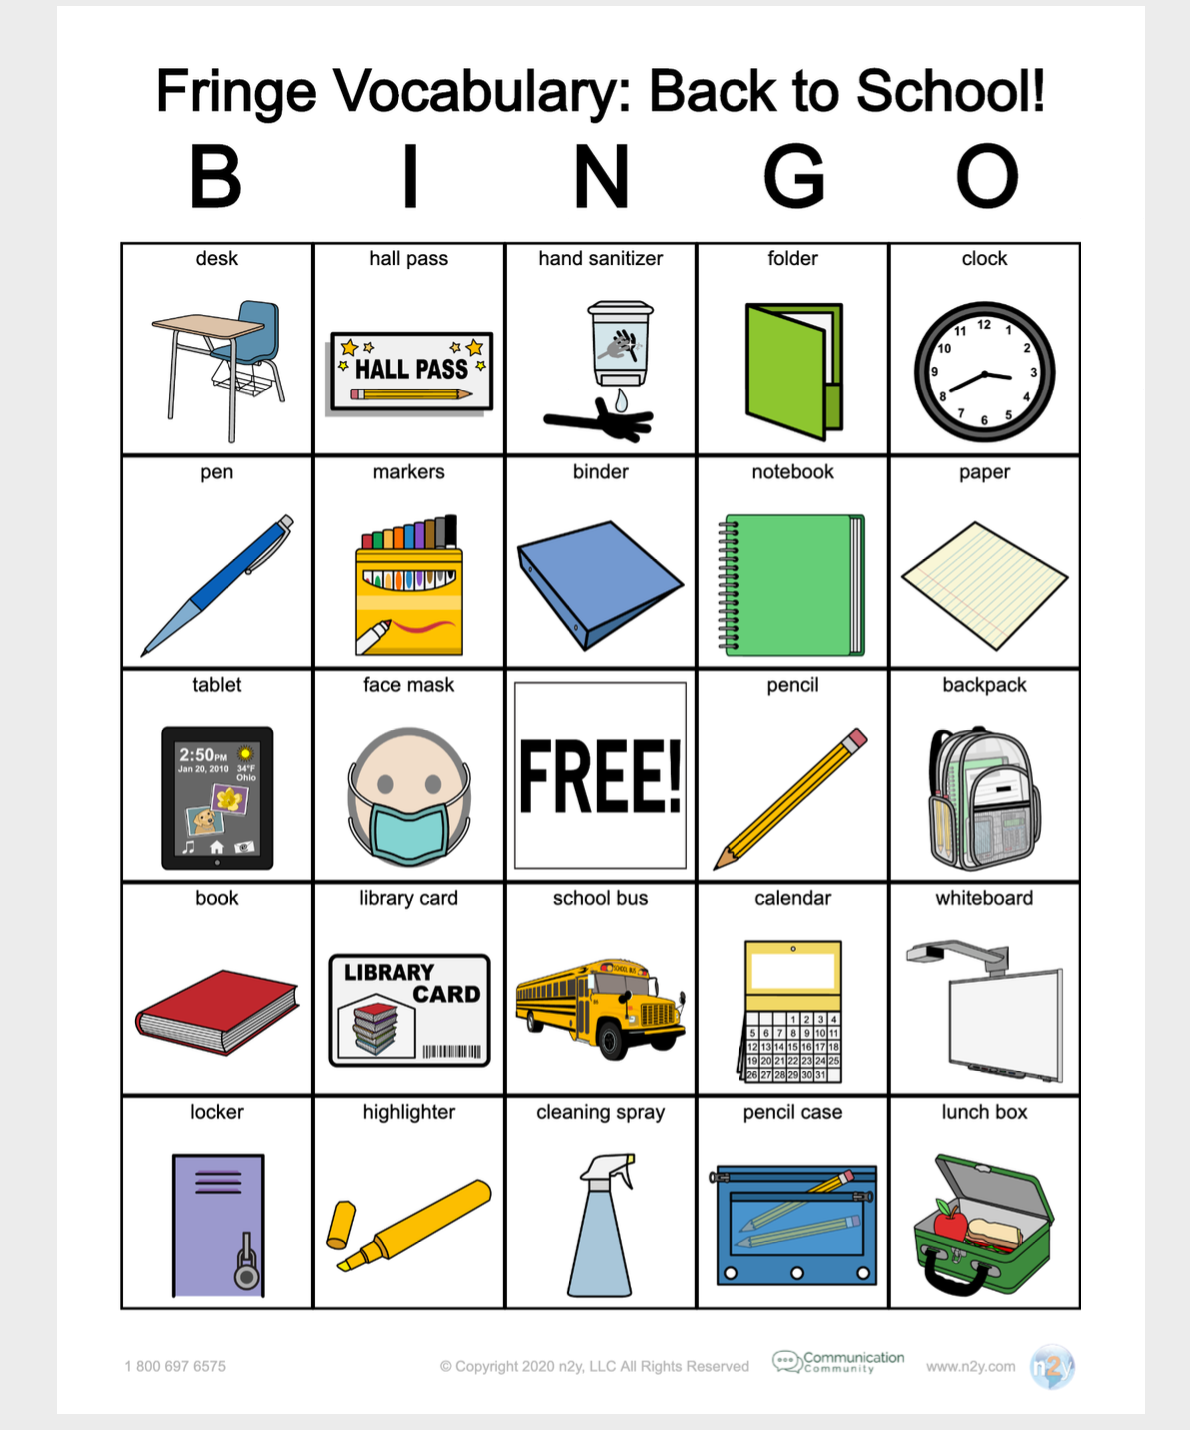 Fringe Vocabulary: Back to School Bingo